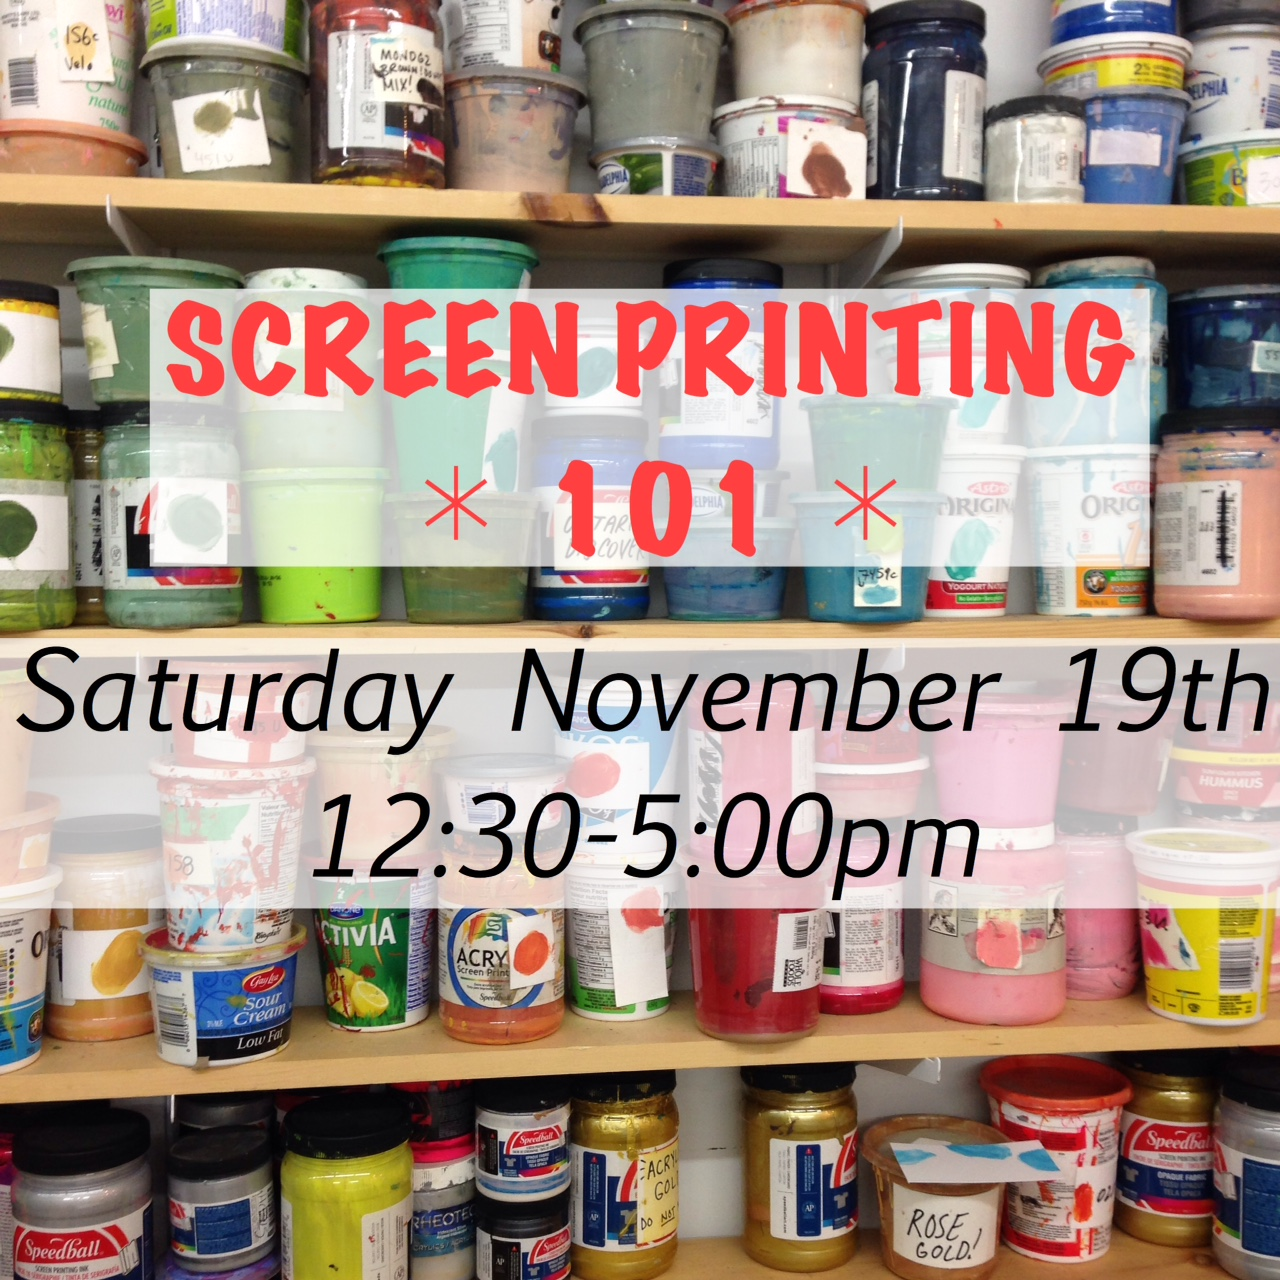 Learn to Screen Print This Saturday!